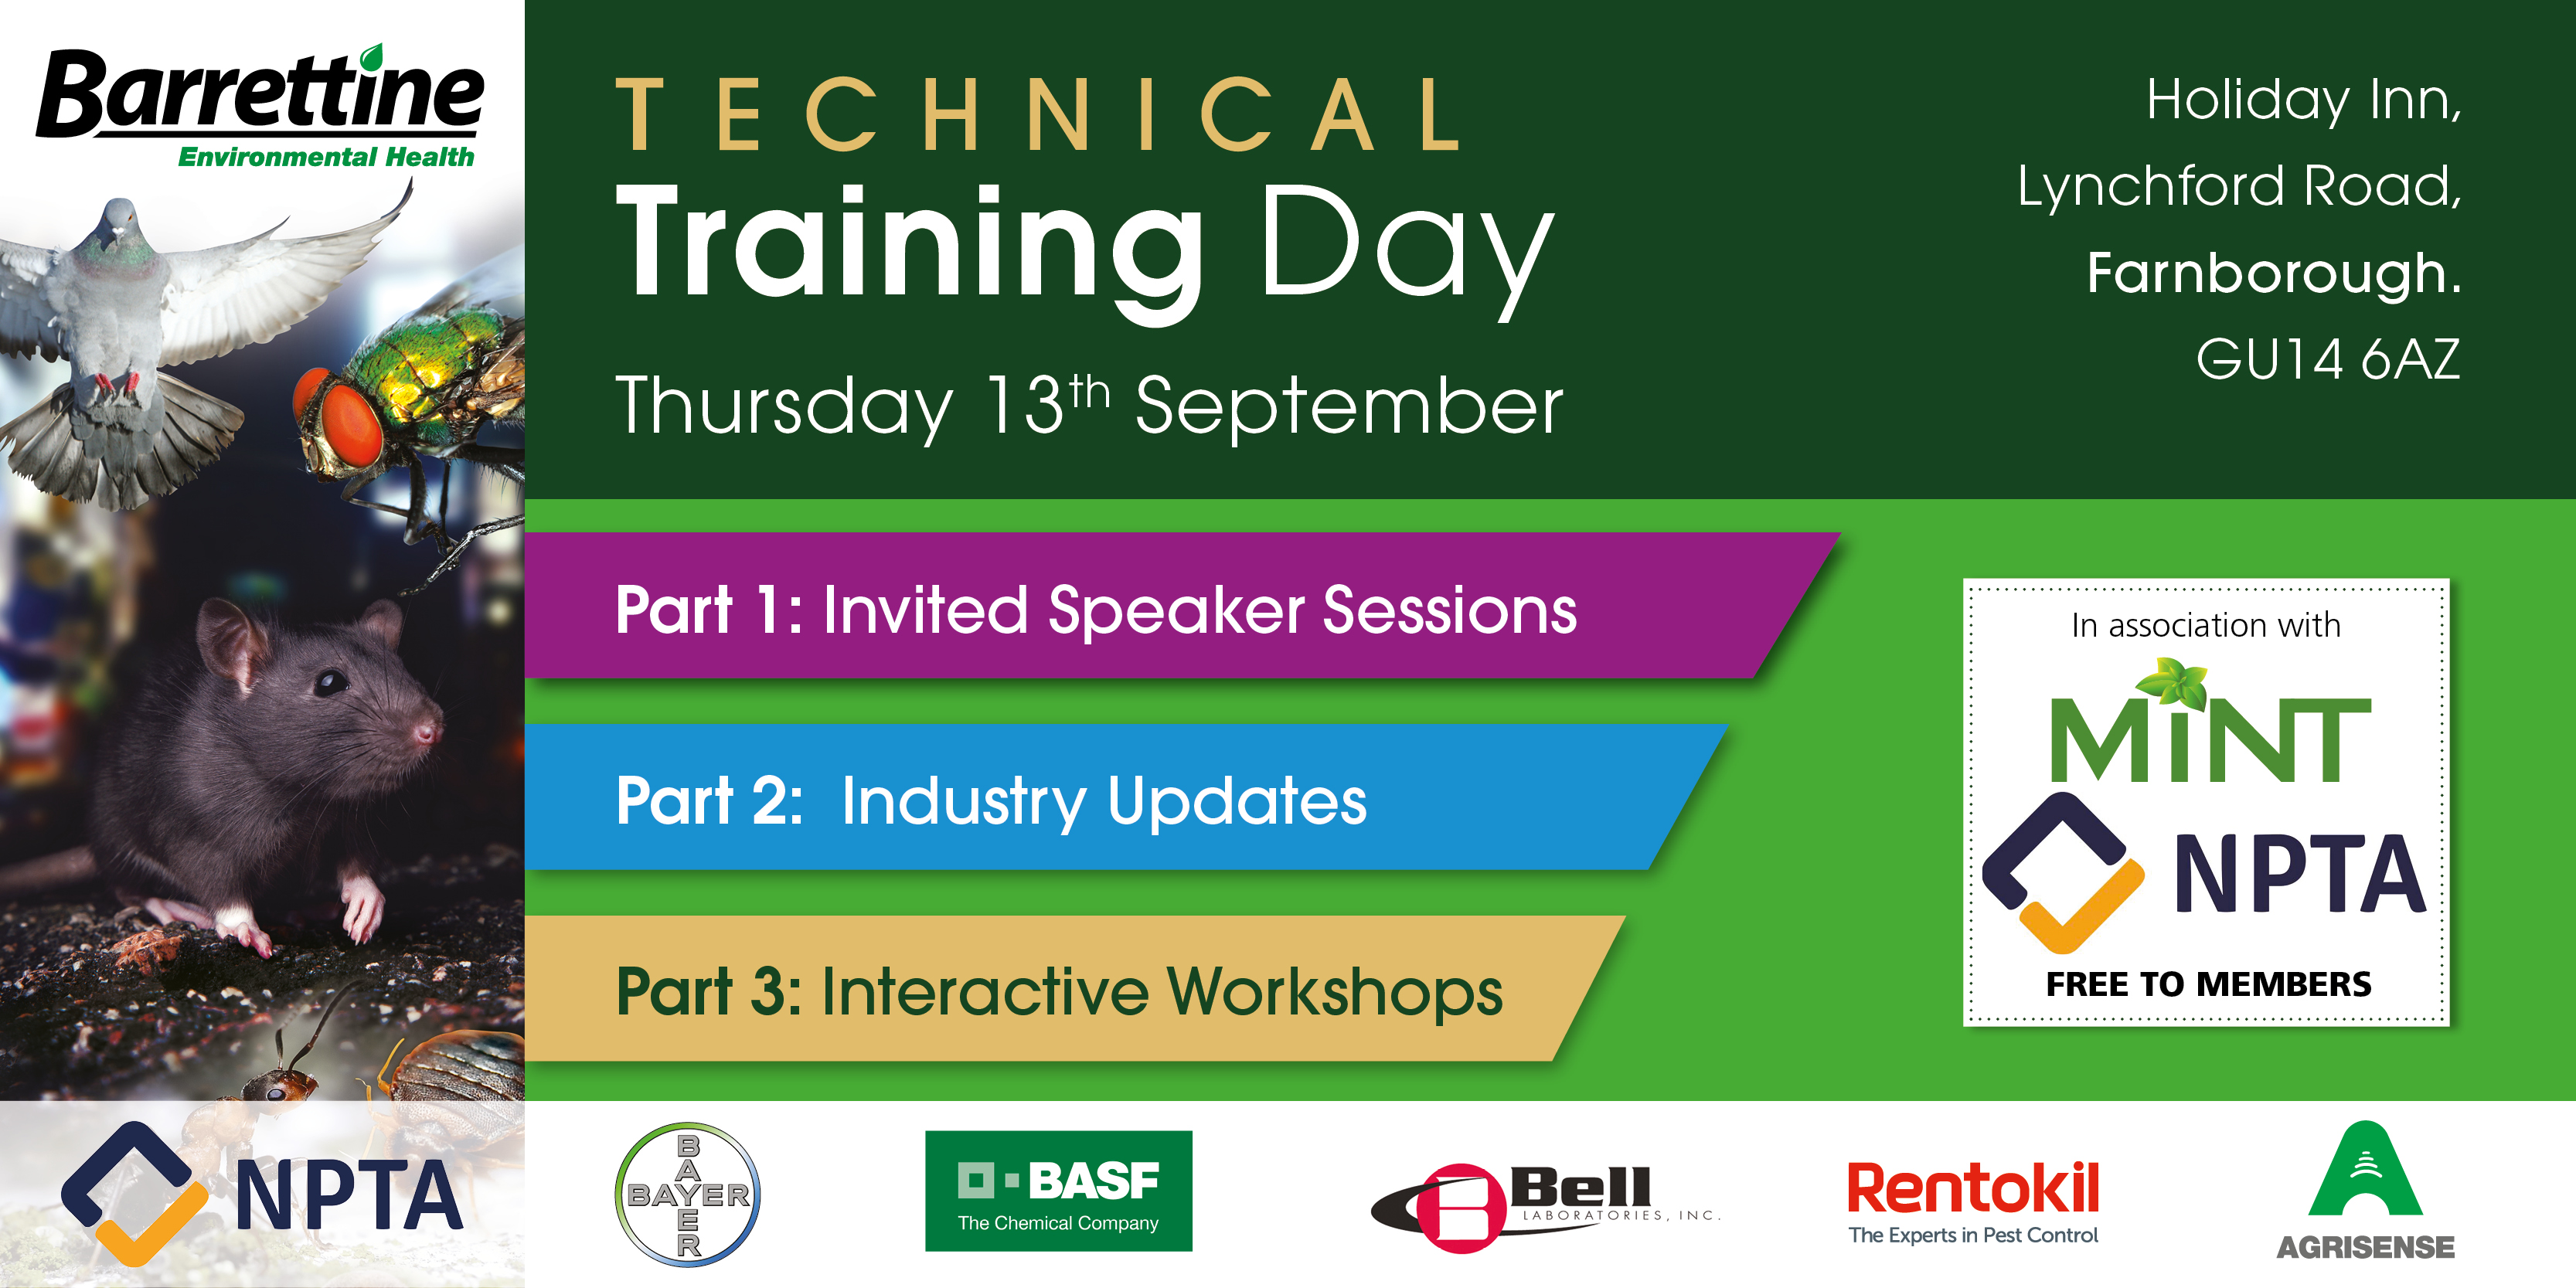 Barrettine & NPTA Technical Training Day Farnborough